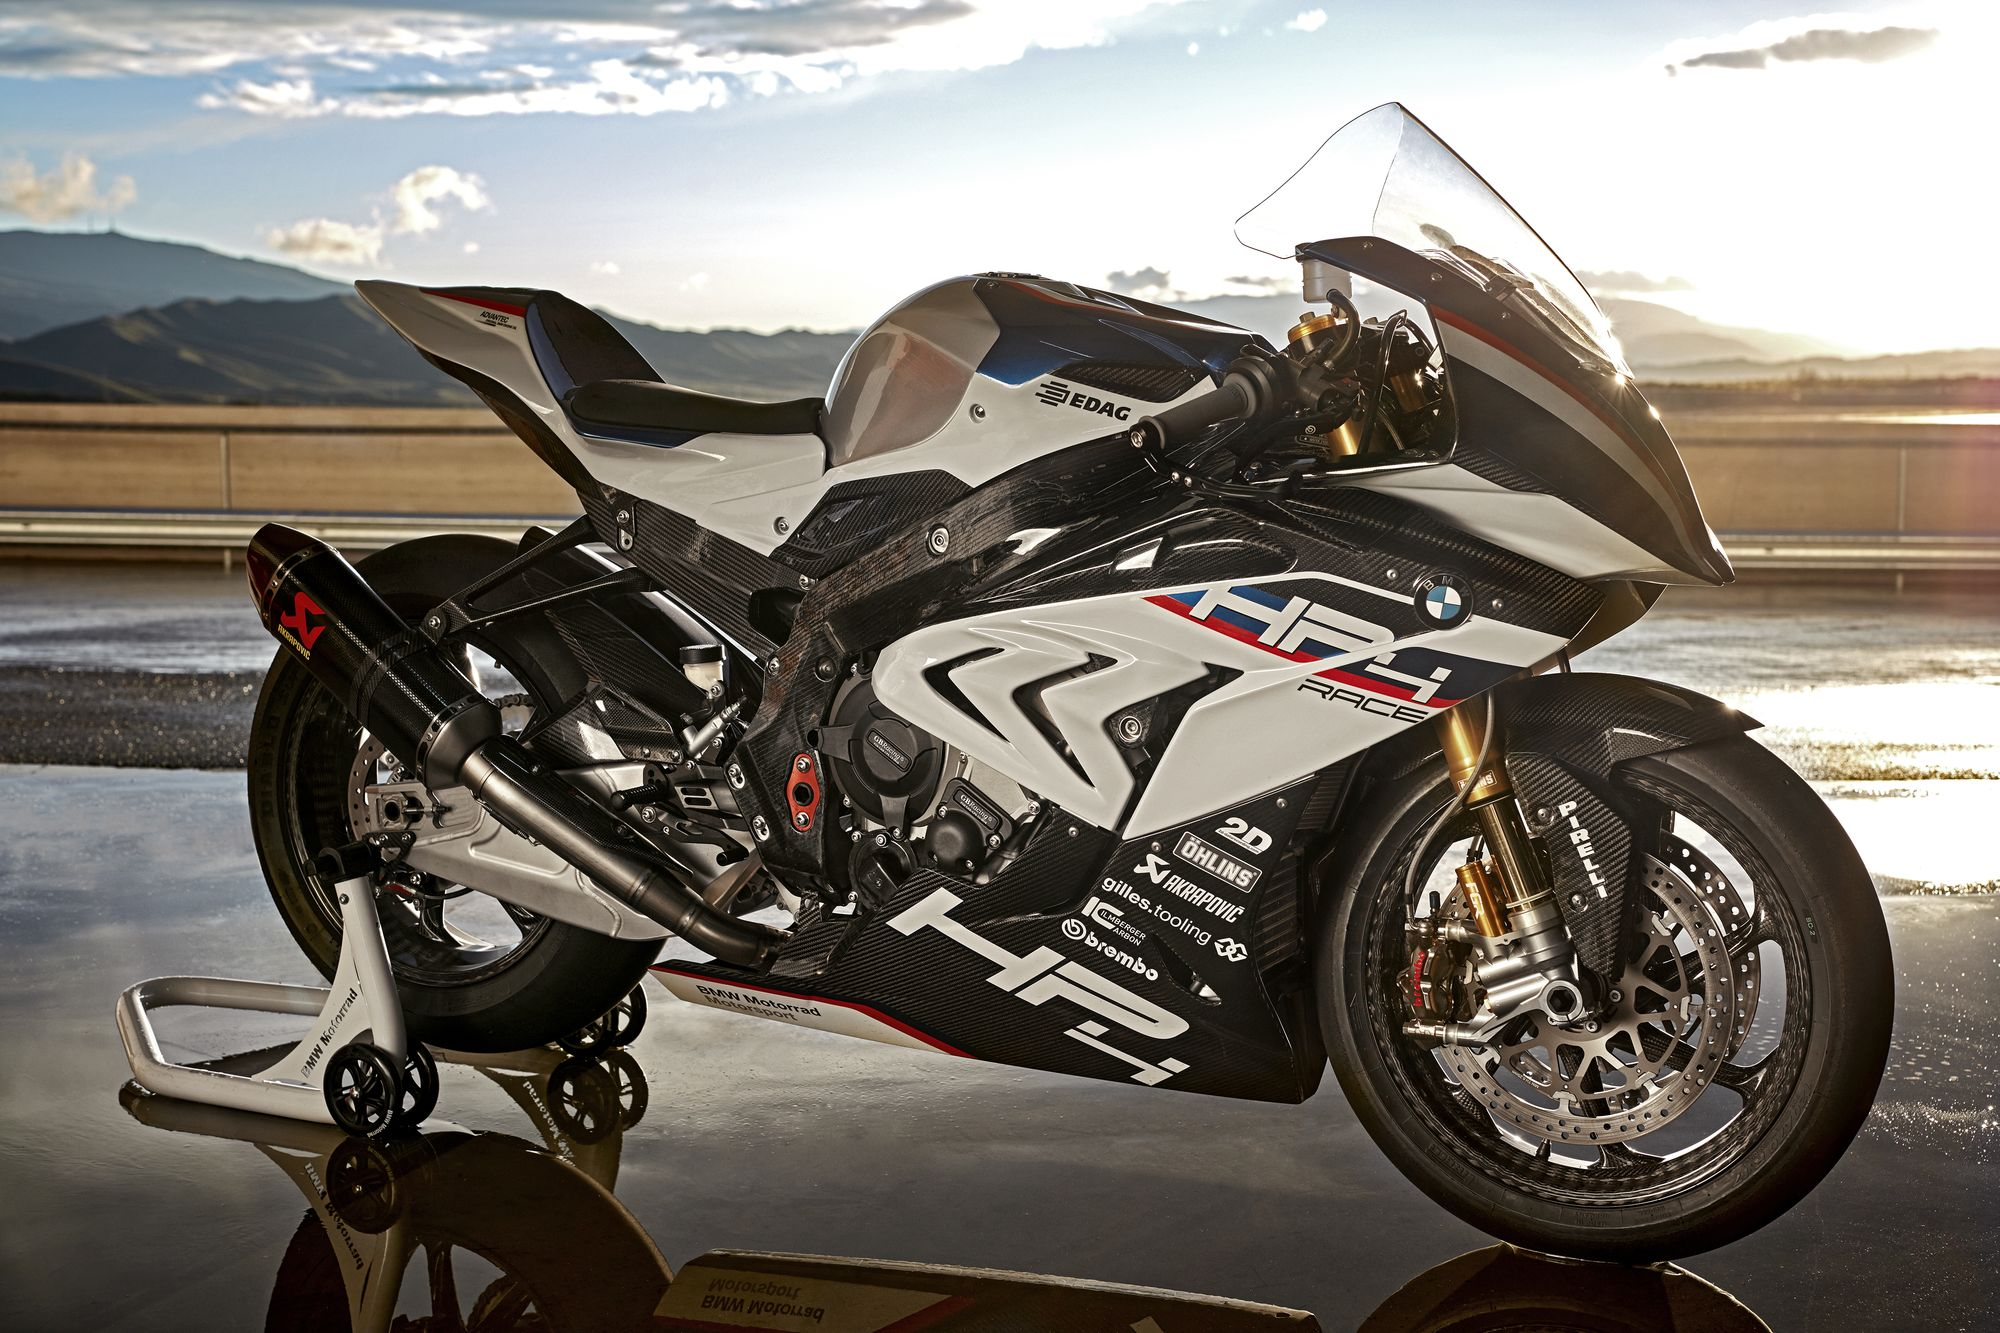 BMW HP4 Racer is the brand new carbon fiber motorcycle from BMW.